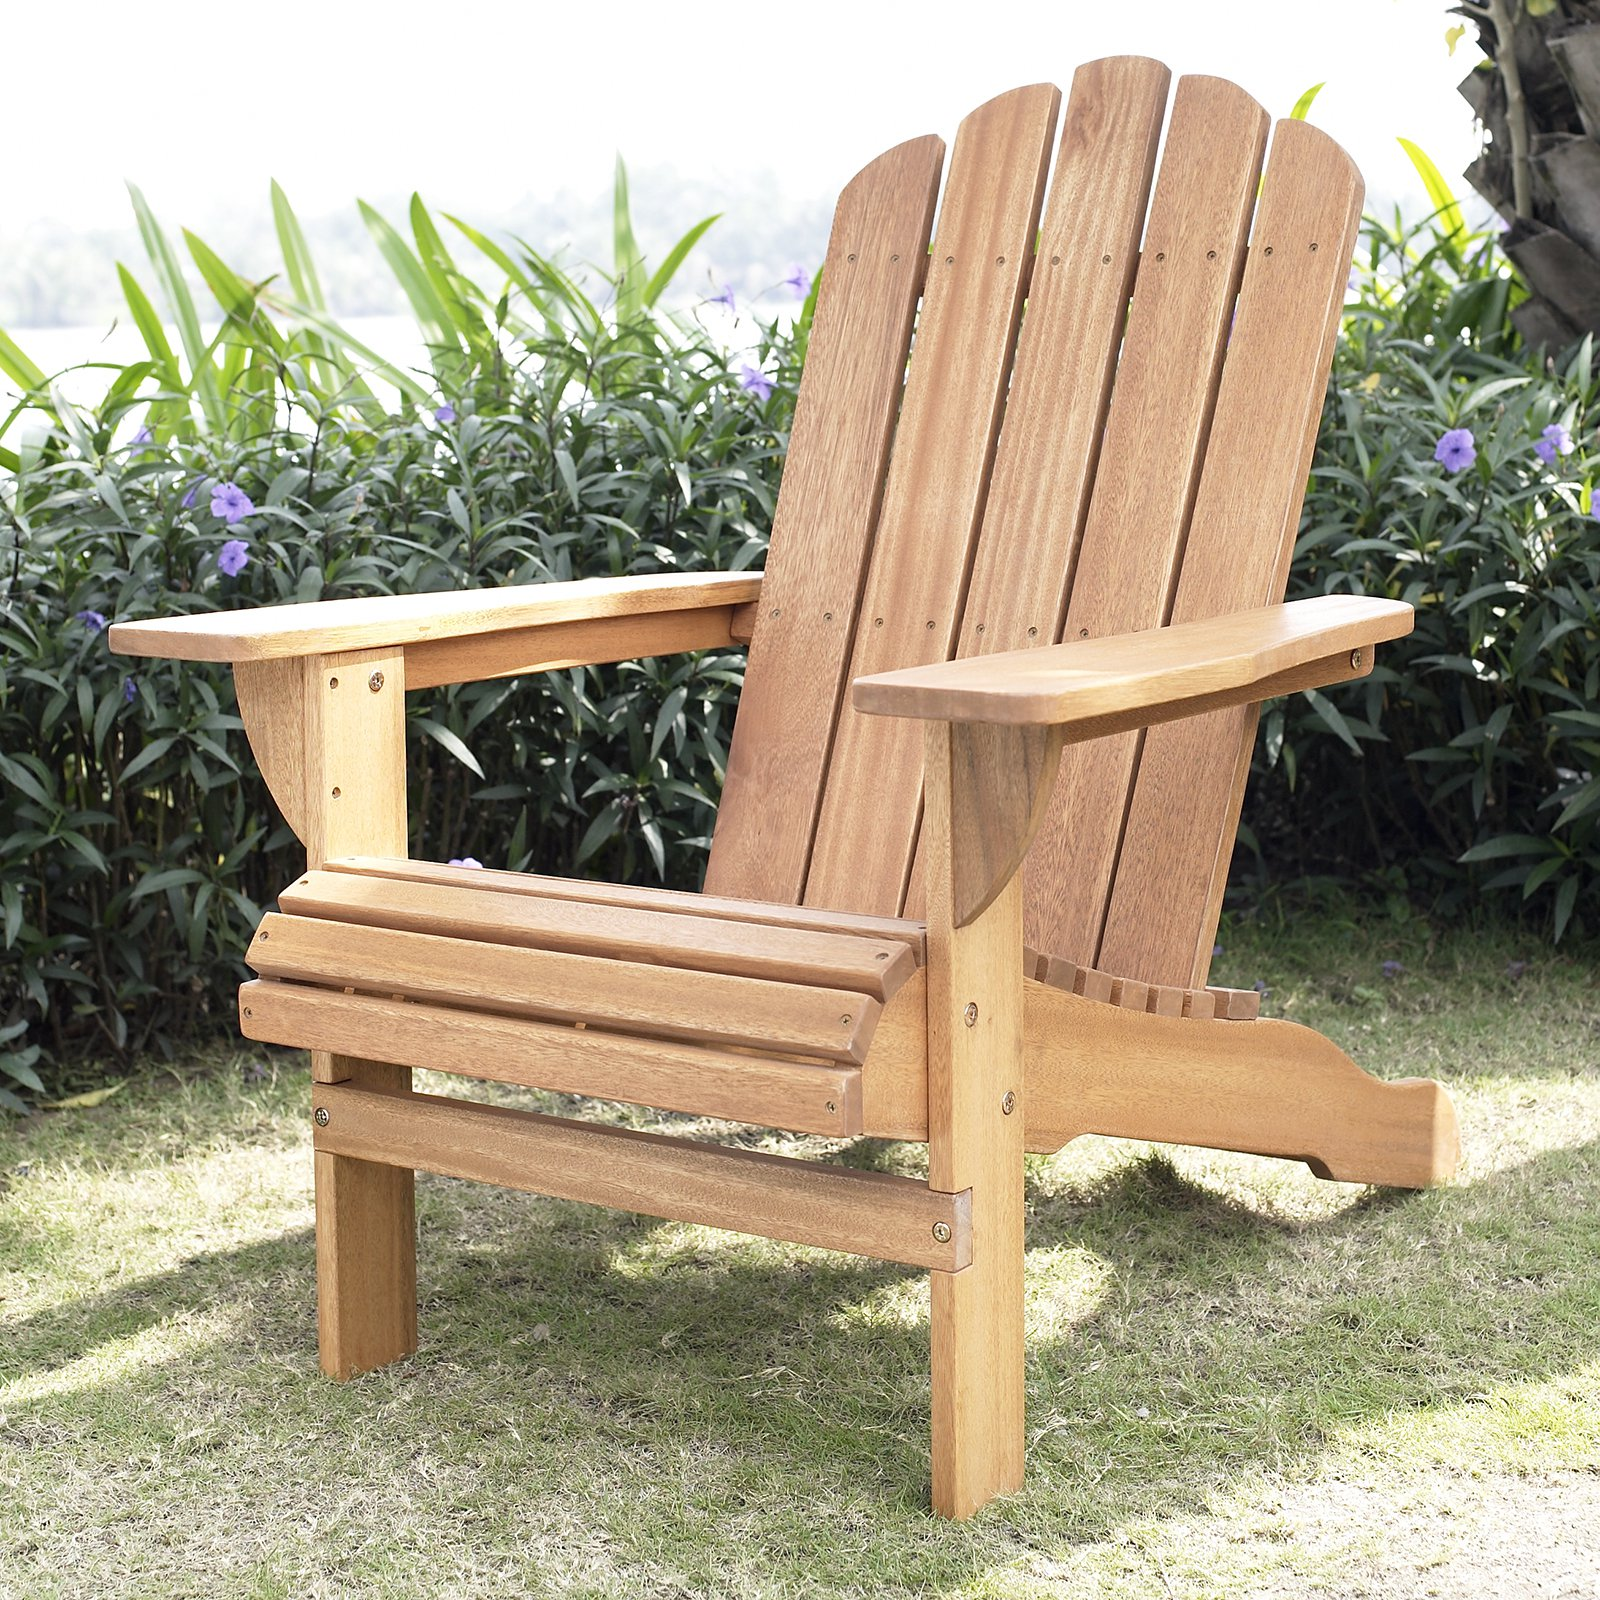 adirondack chairs belham living shoreline adirondack chair - natural - walmart.com HGFNUWK